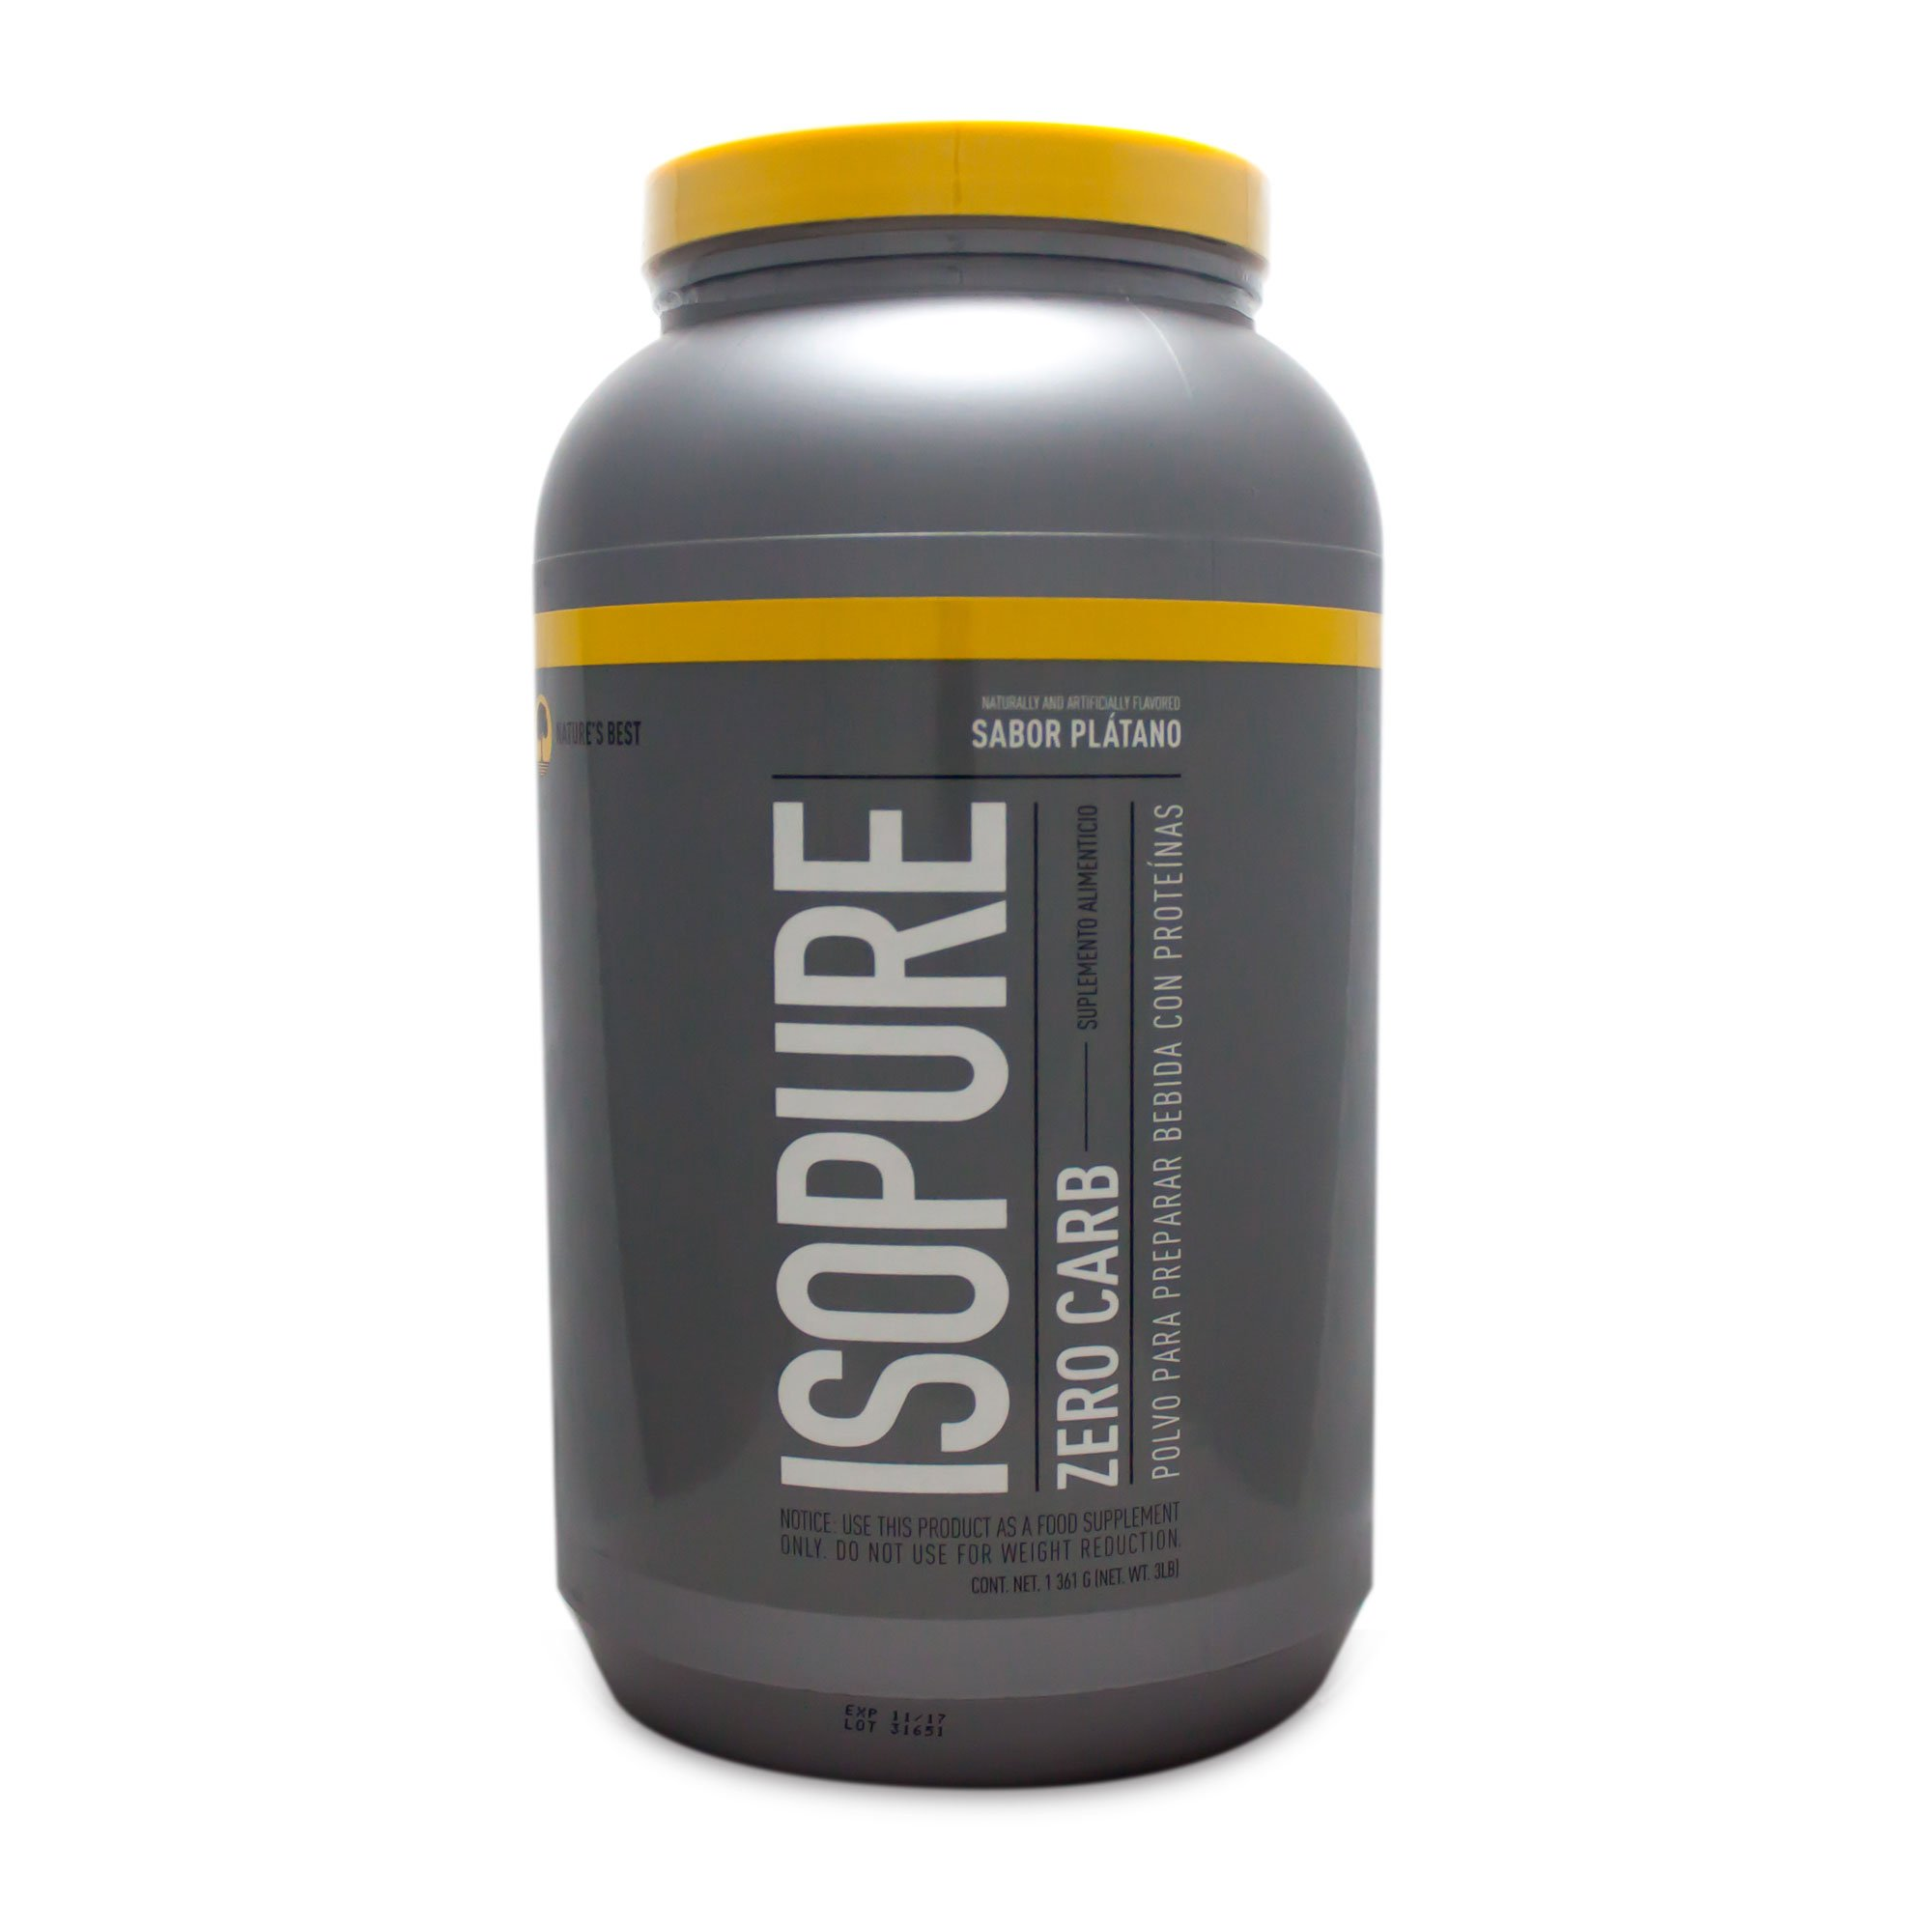 Nature'S Best Isopure Banana Cream (Zero Carb), 3-Pound Tub by Nature's Best, IsoPure